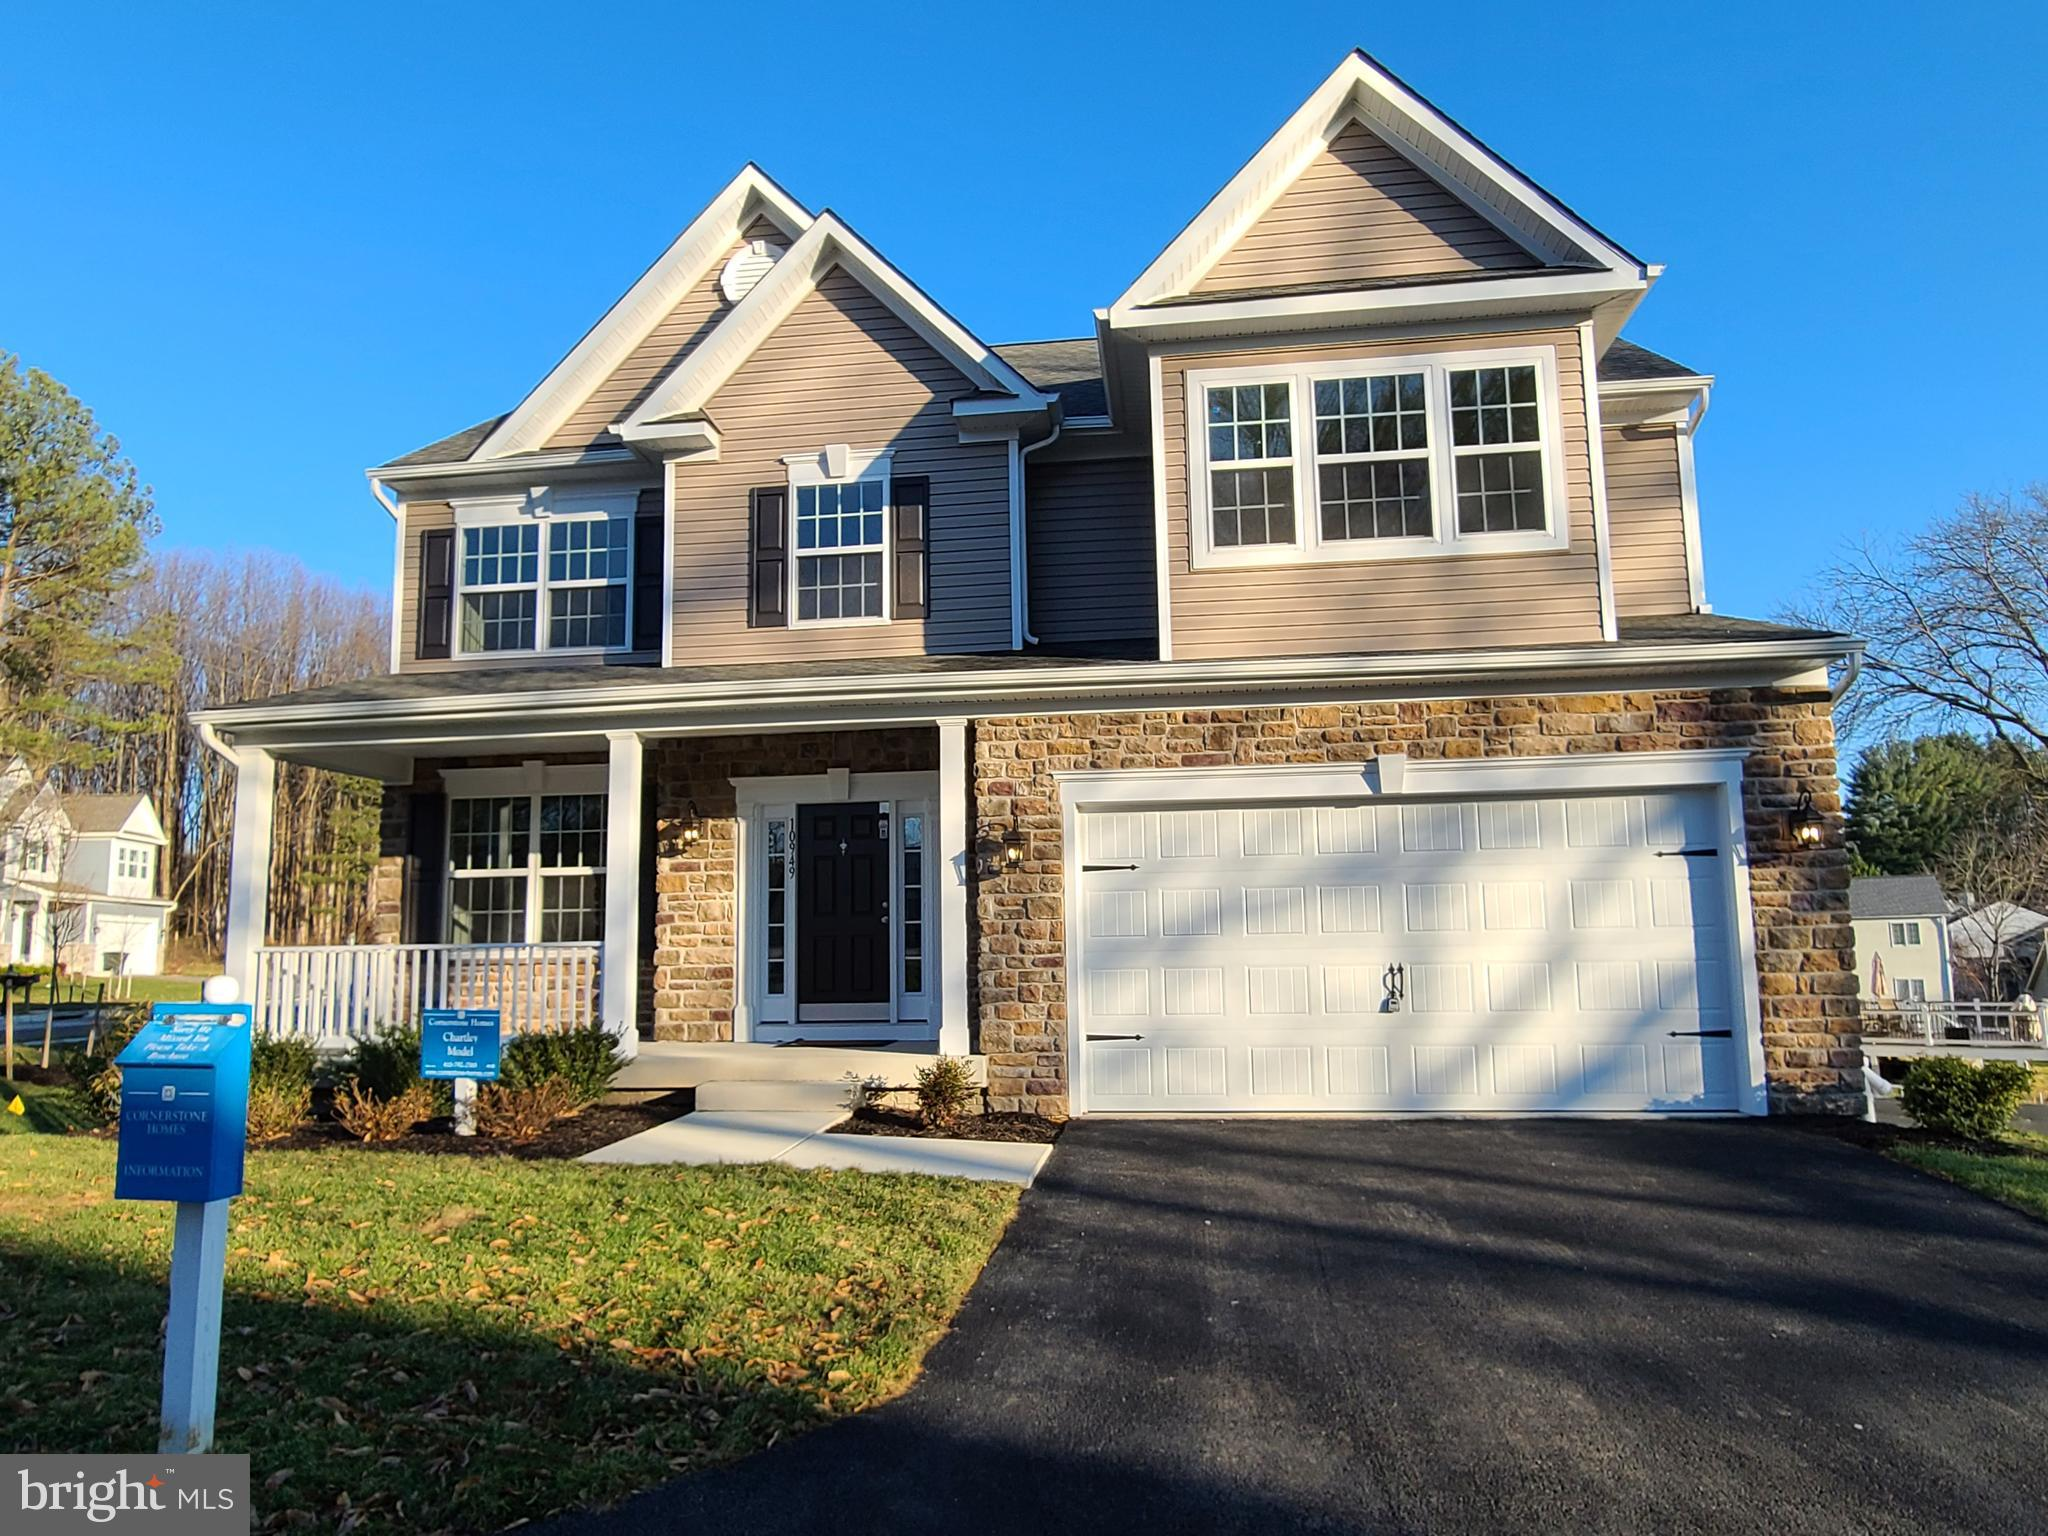 10949 HILLTOP LANE, Columbia, Maryland 21044, 5 Bedrooms Bedrooms, ,4 BathroomsBathrooms,Single Family,For Sale,10949 HILLTOP LANE,MDHW288528